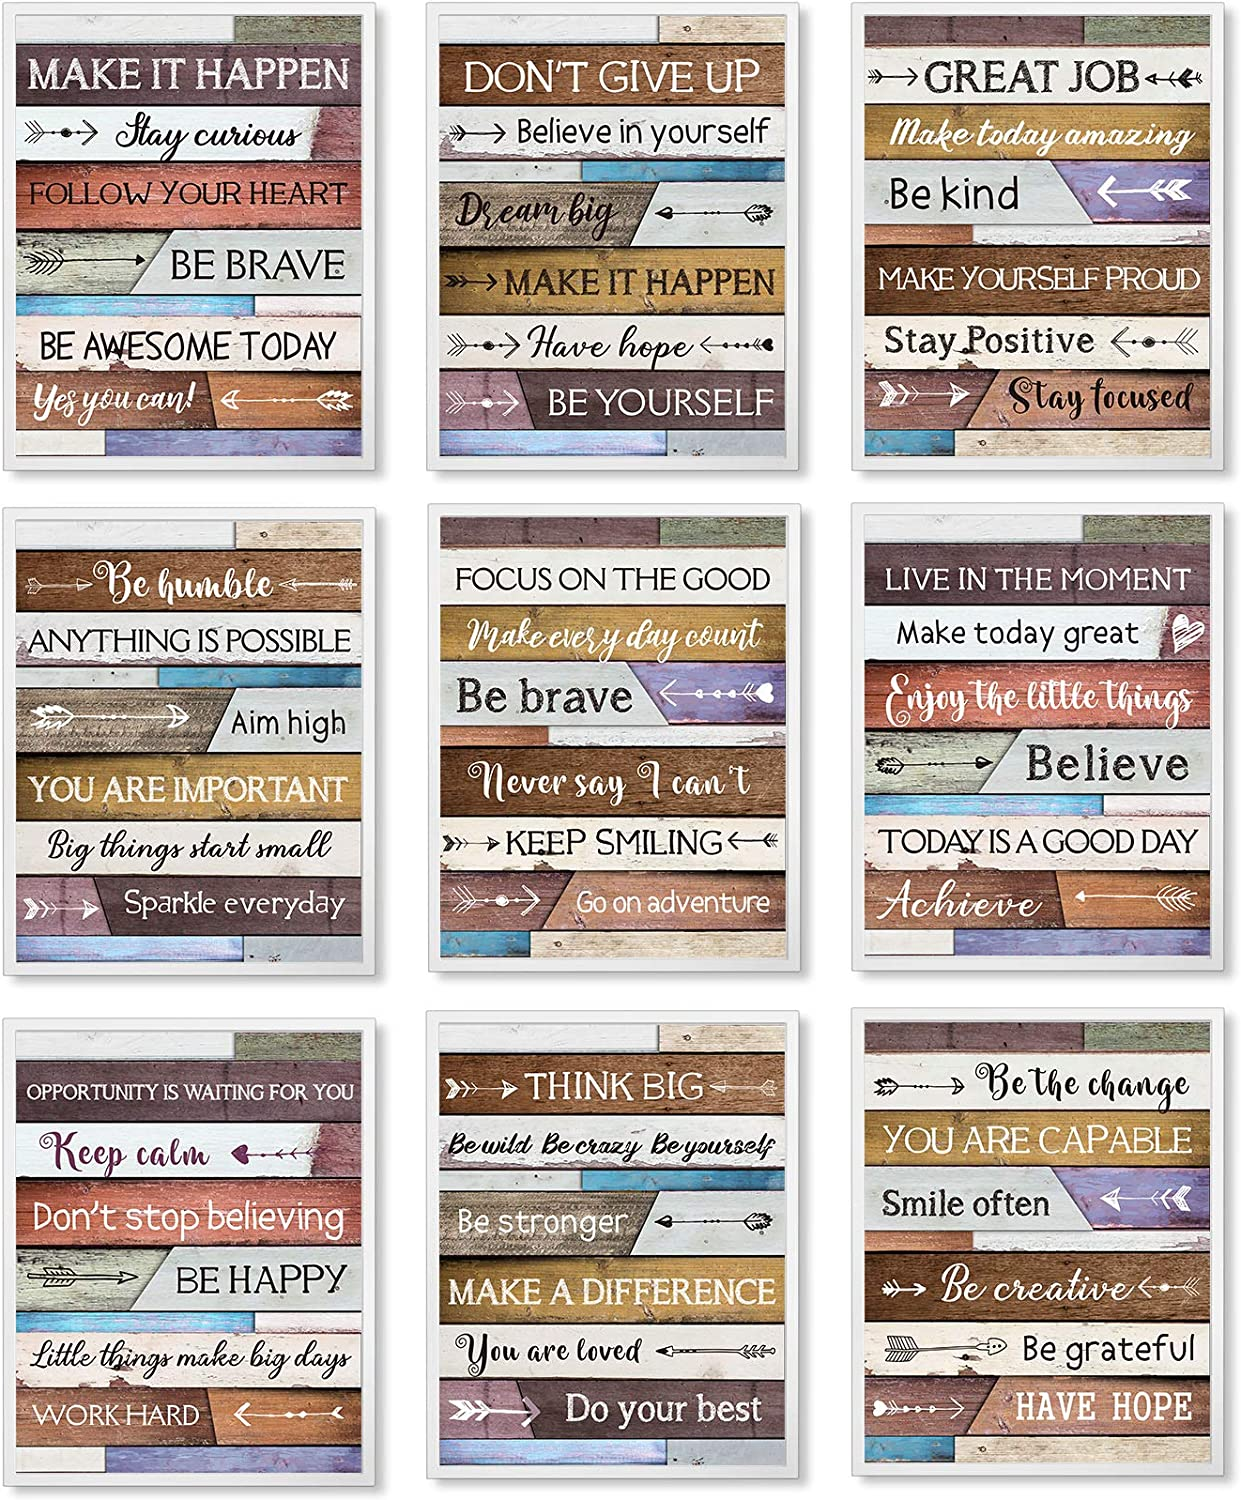 9 Pieces Inspirational Wall Art for Office Inspirational Motivational Poster Motivational Wall Art Motivational Quote Office Wall Art, Inspirational Quote Wall Decor for Bedroom Living Room, Unframed